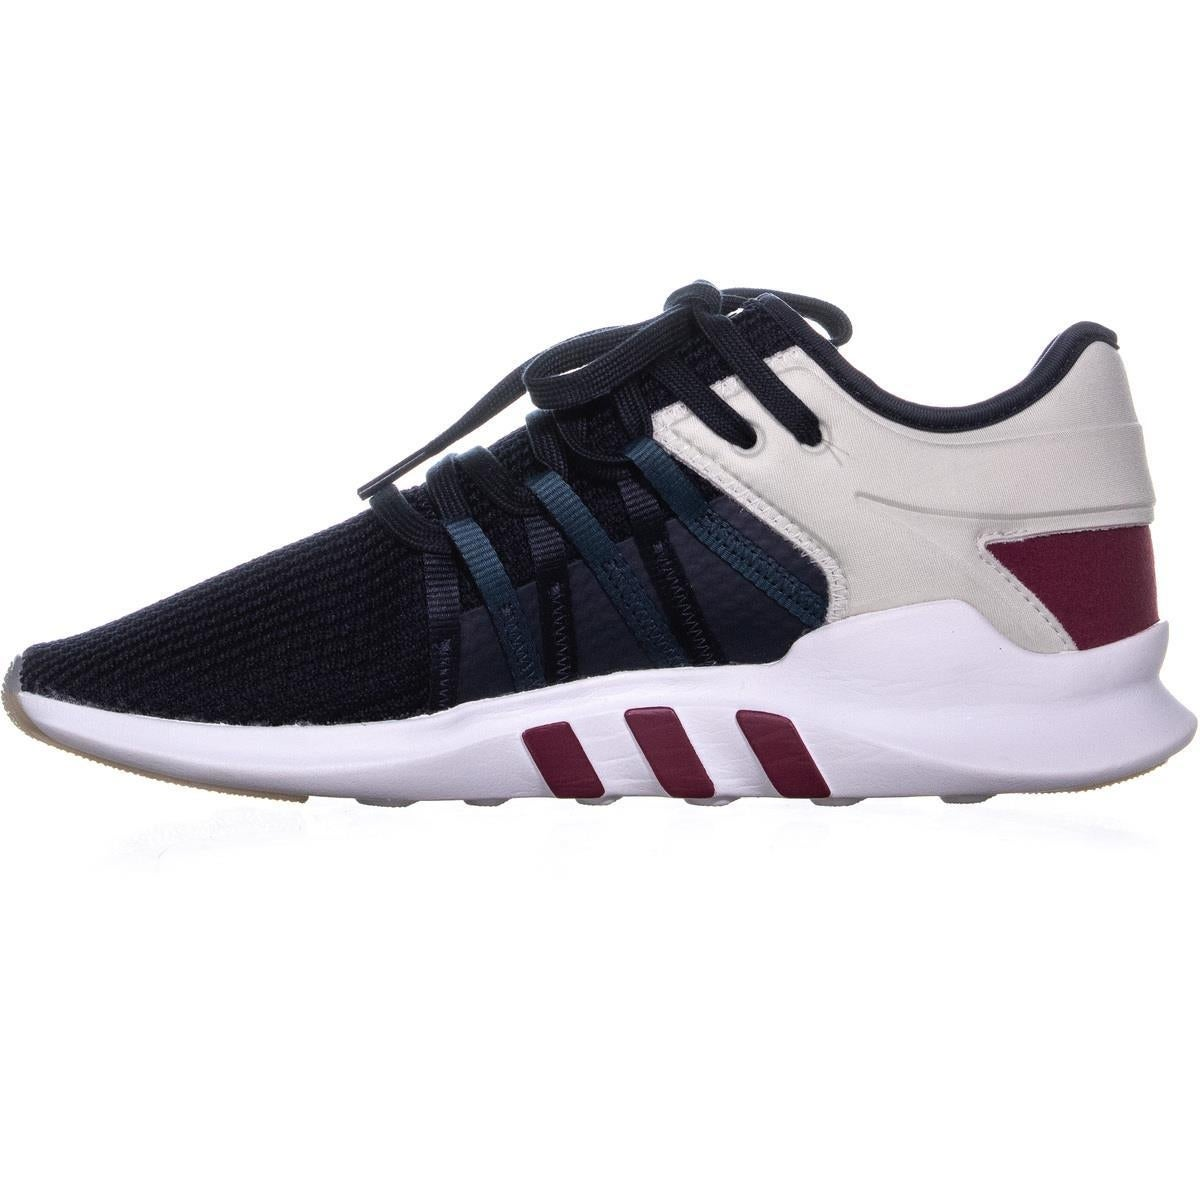 official photos 52d98 8c438 adidas Eqt Racing ADV Sneakers, Pink/Navy/White - 11 US